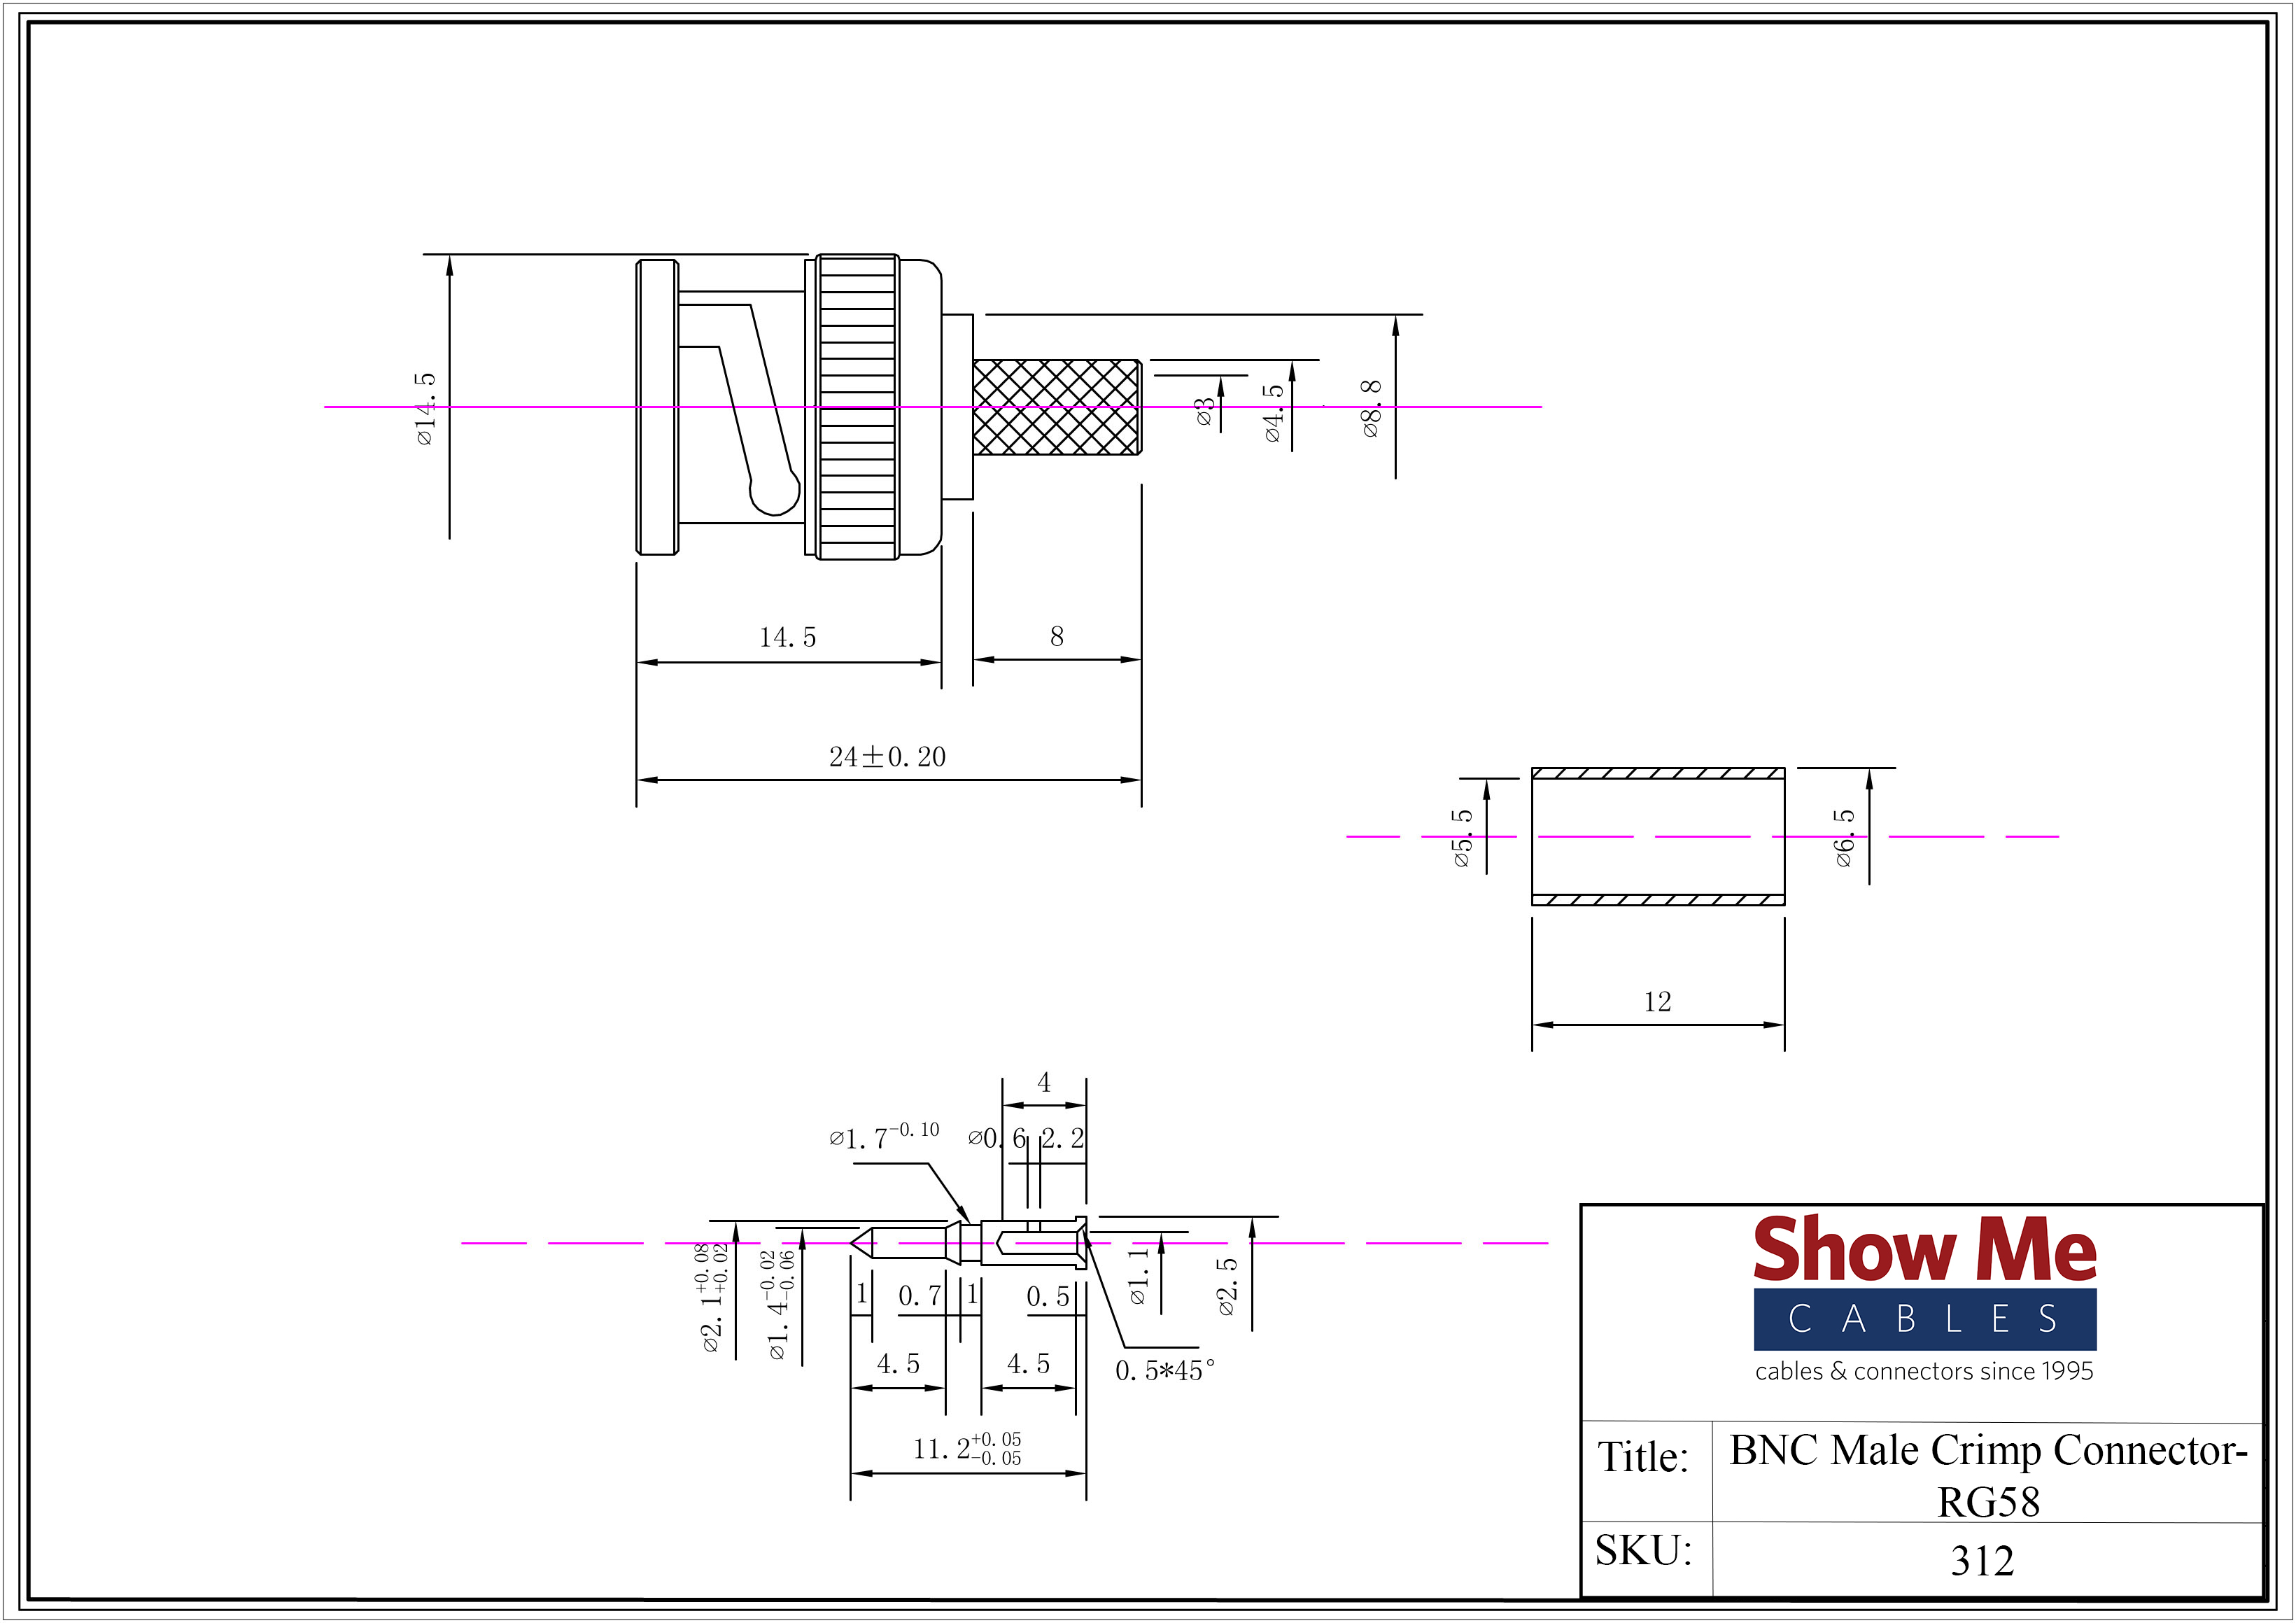 Bnc Male Crimp Connector Rg58 Wiring Diagram Click Here To Download The Spec Sheet